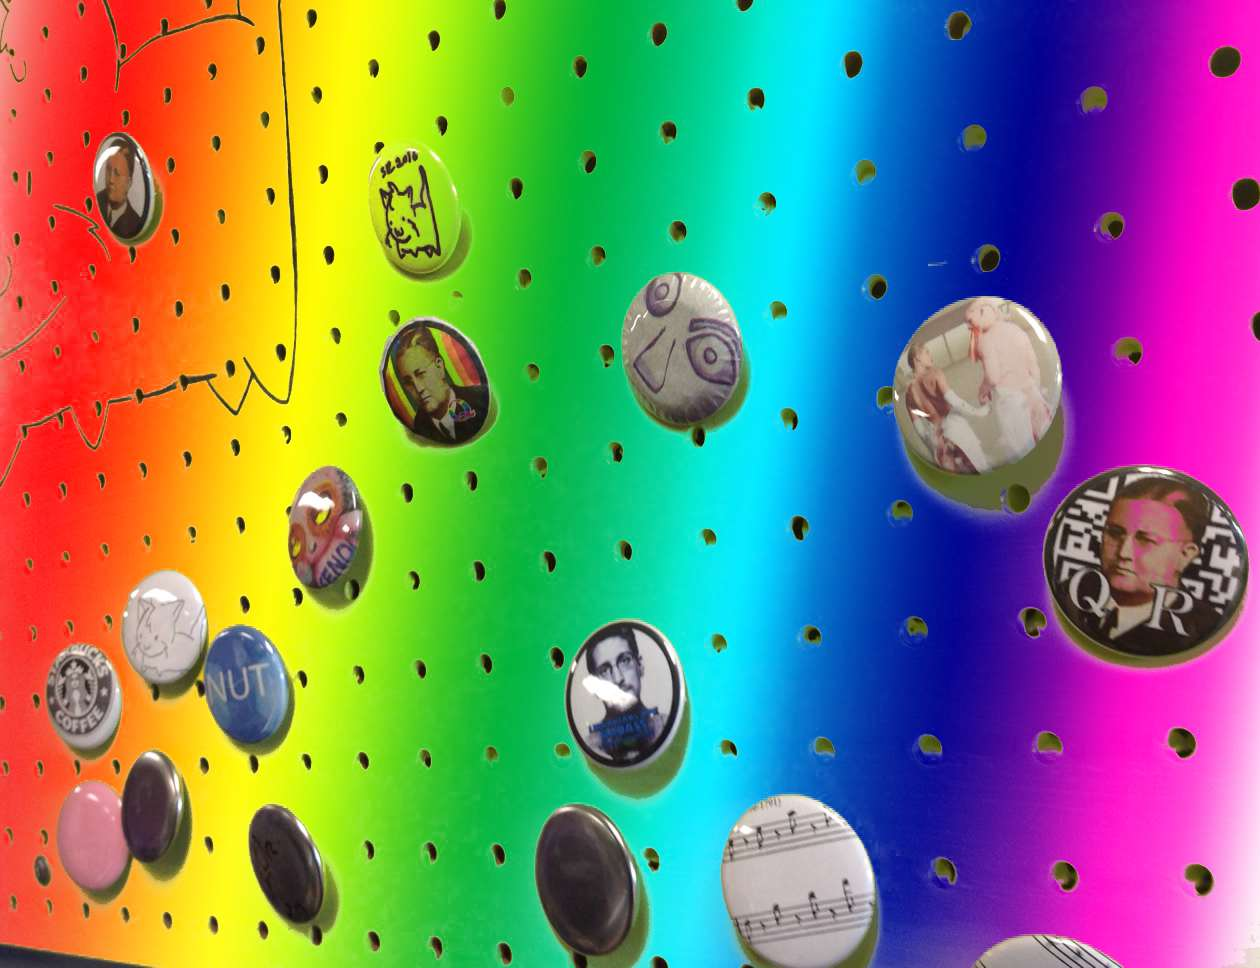 Buttons displayed on a wall